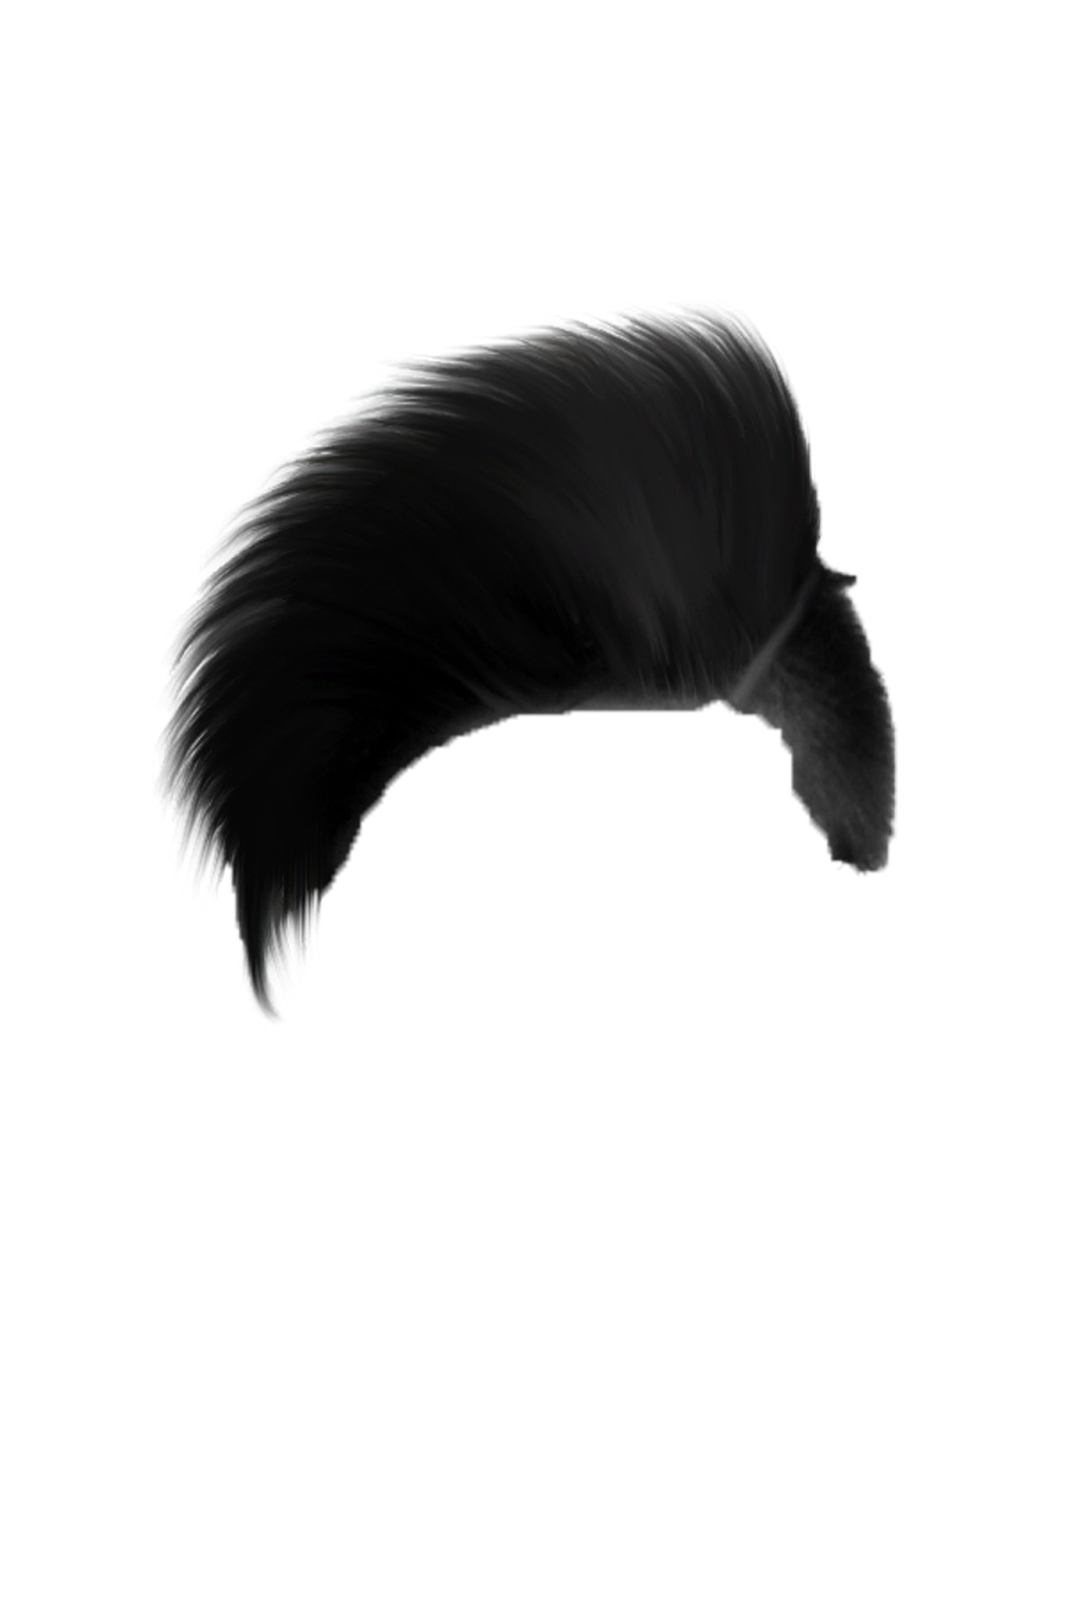 Photoshop hair png. New republic day photo